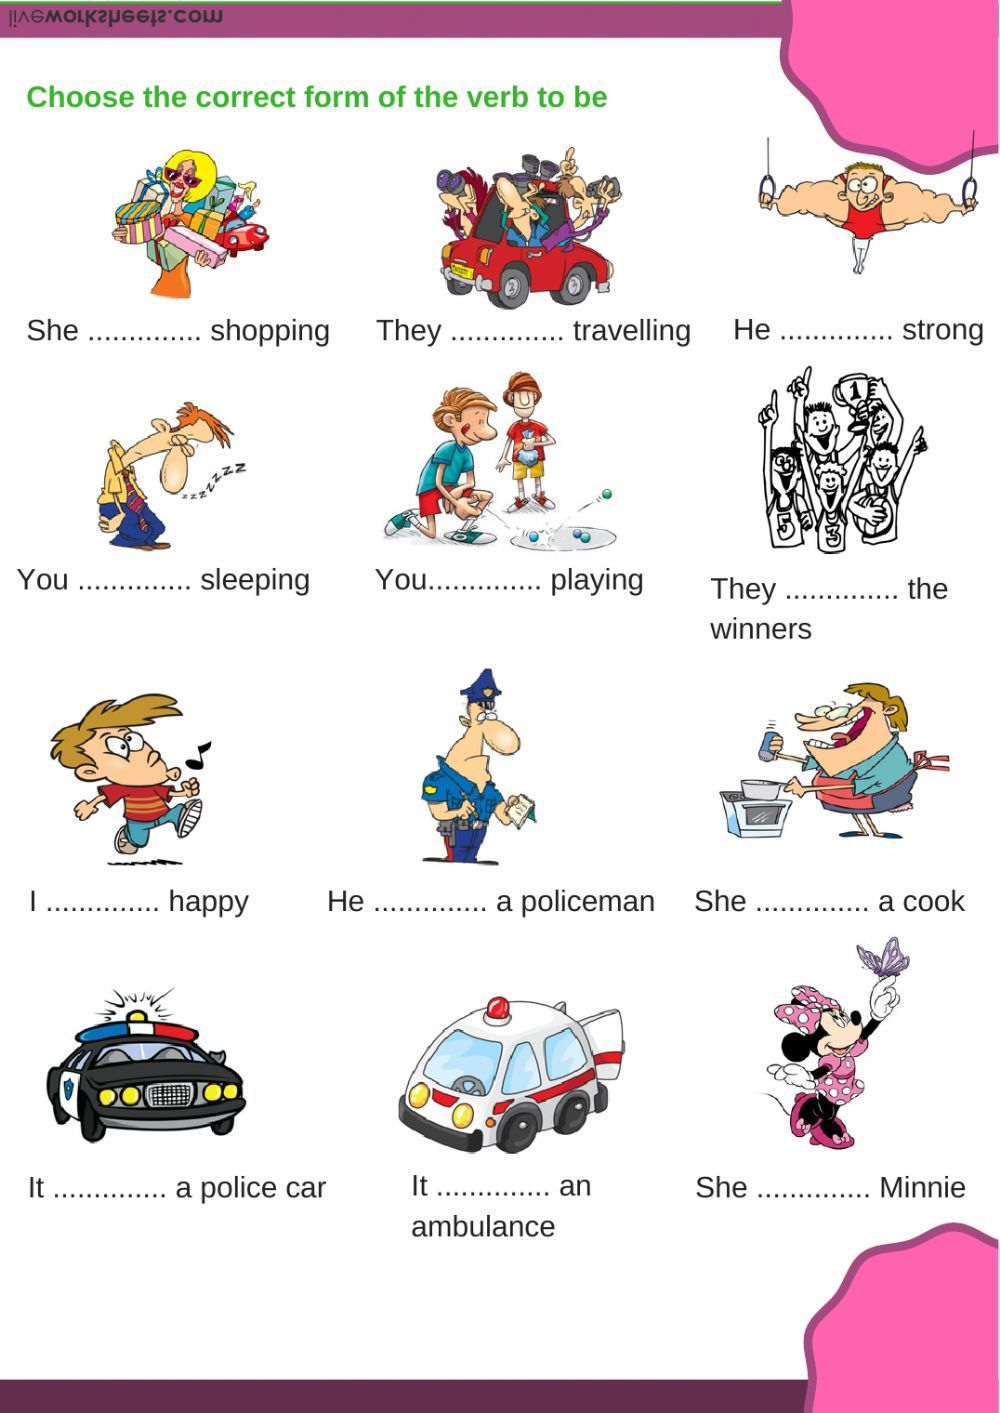 Verb to be worksheet. You can do the exercises online or